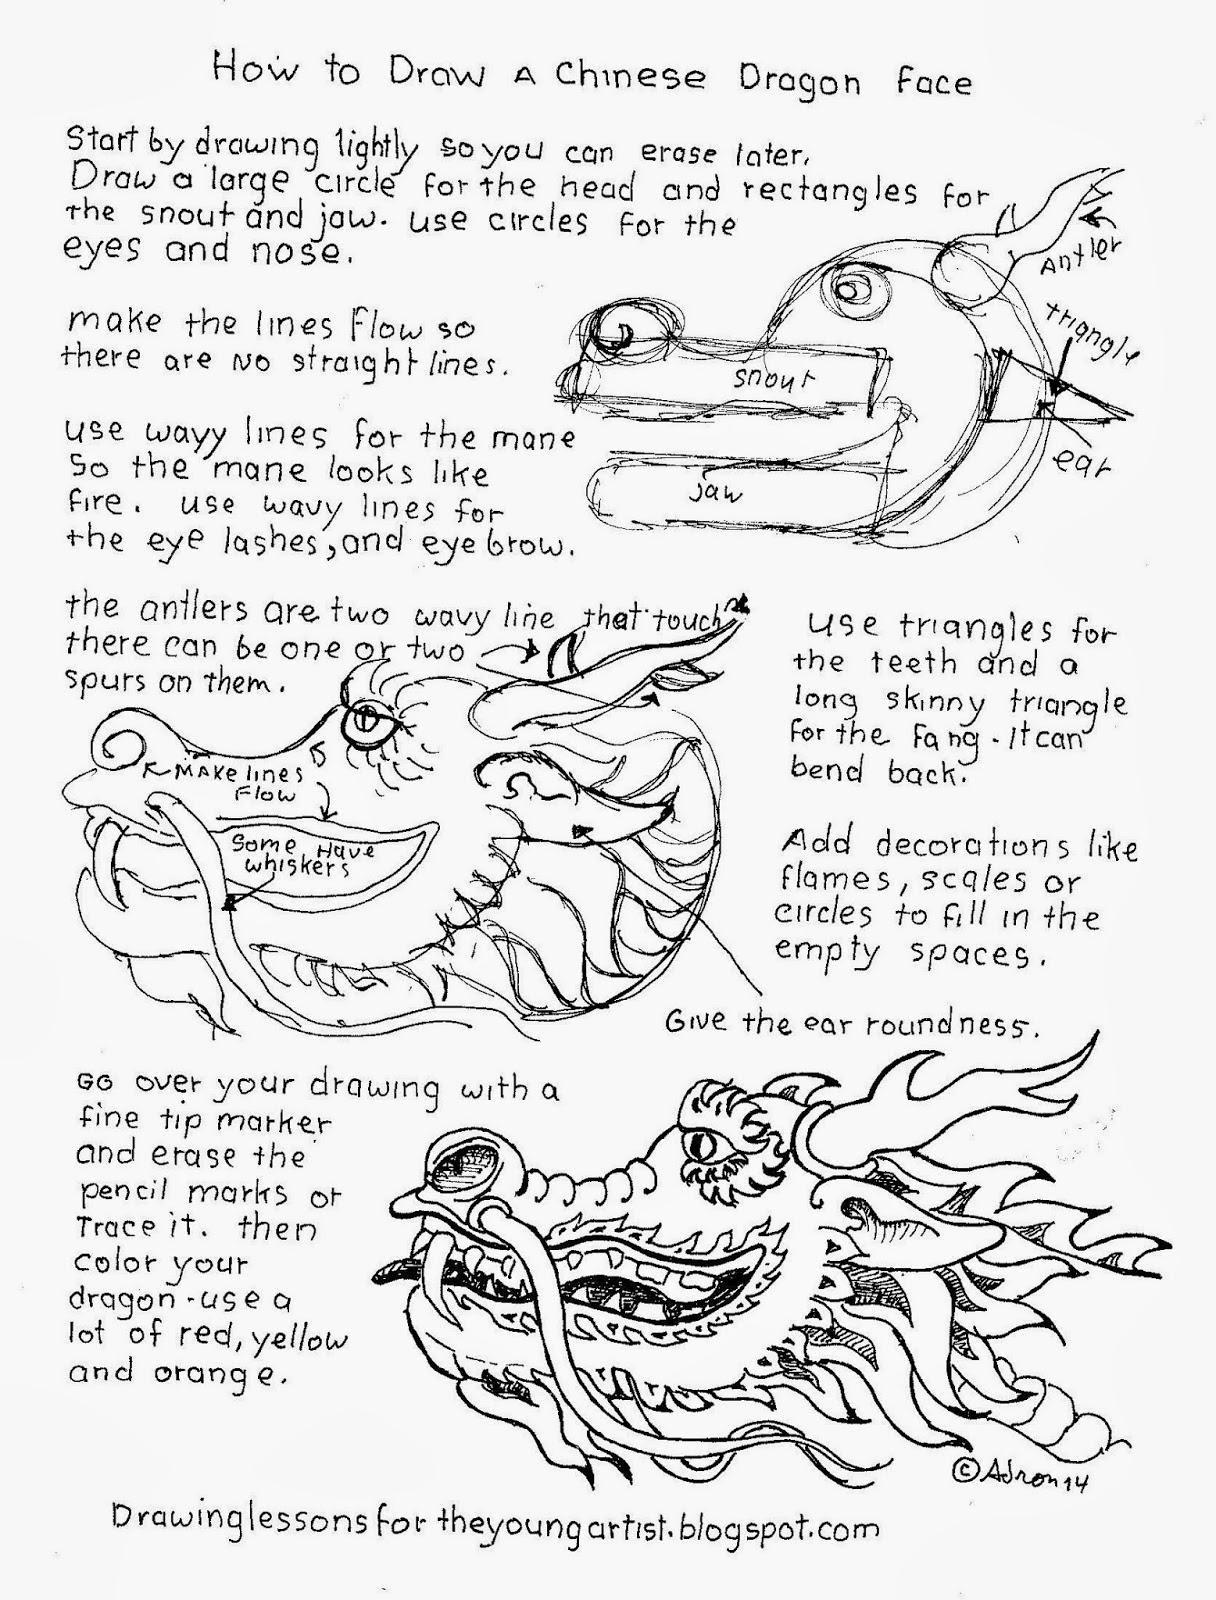 How To Draw A Chinese Dragon Head, Free Worksheet How To Draw Worksheets  For The